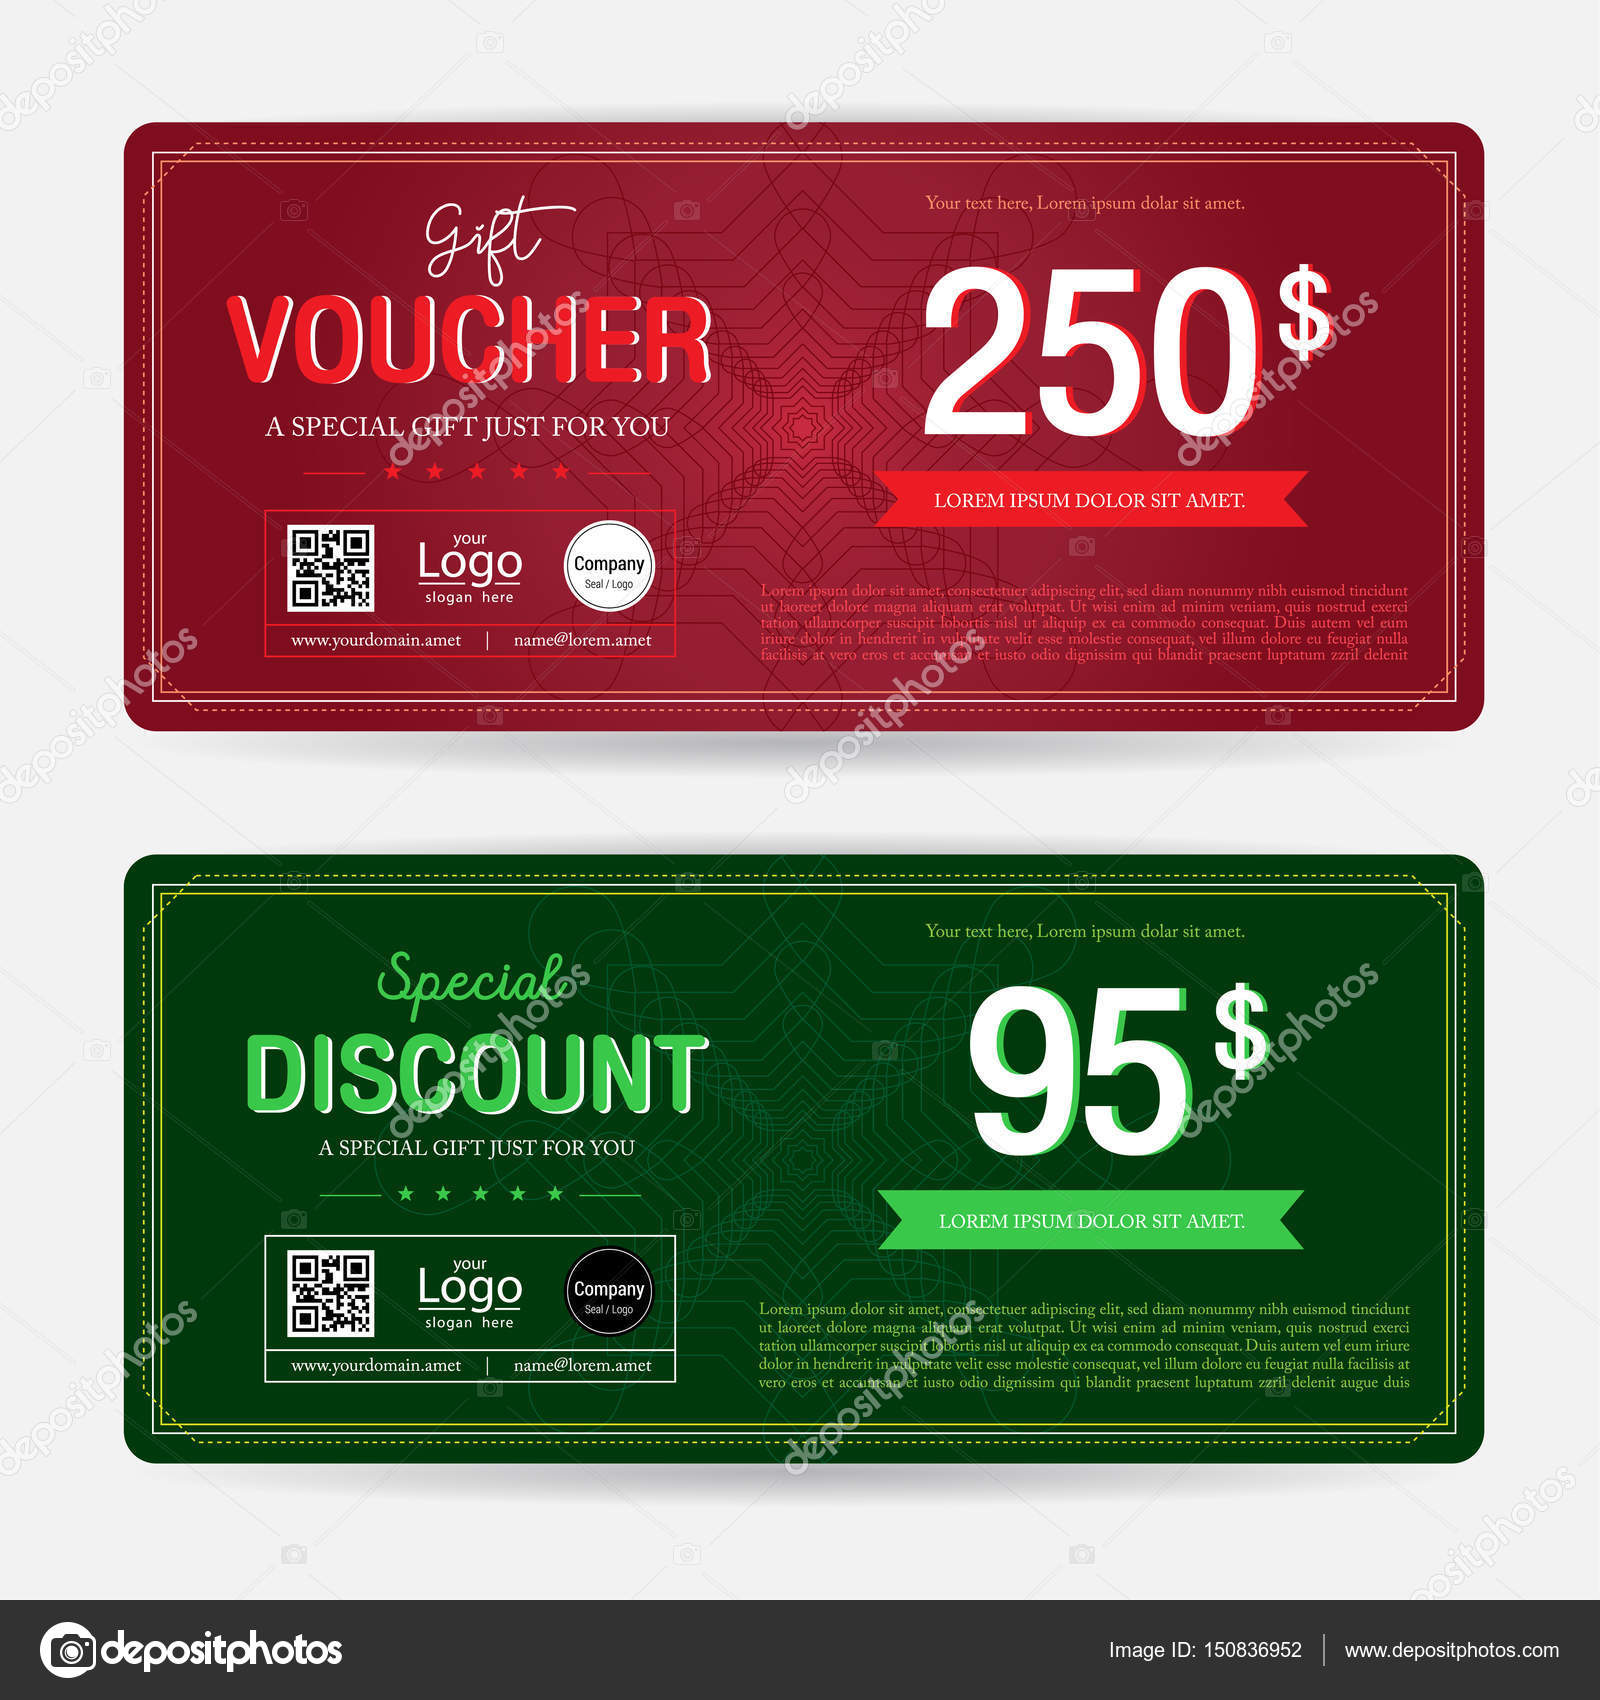 gift voucher or gift coupon template for award redemption promo on